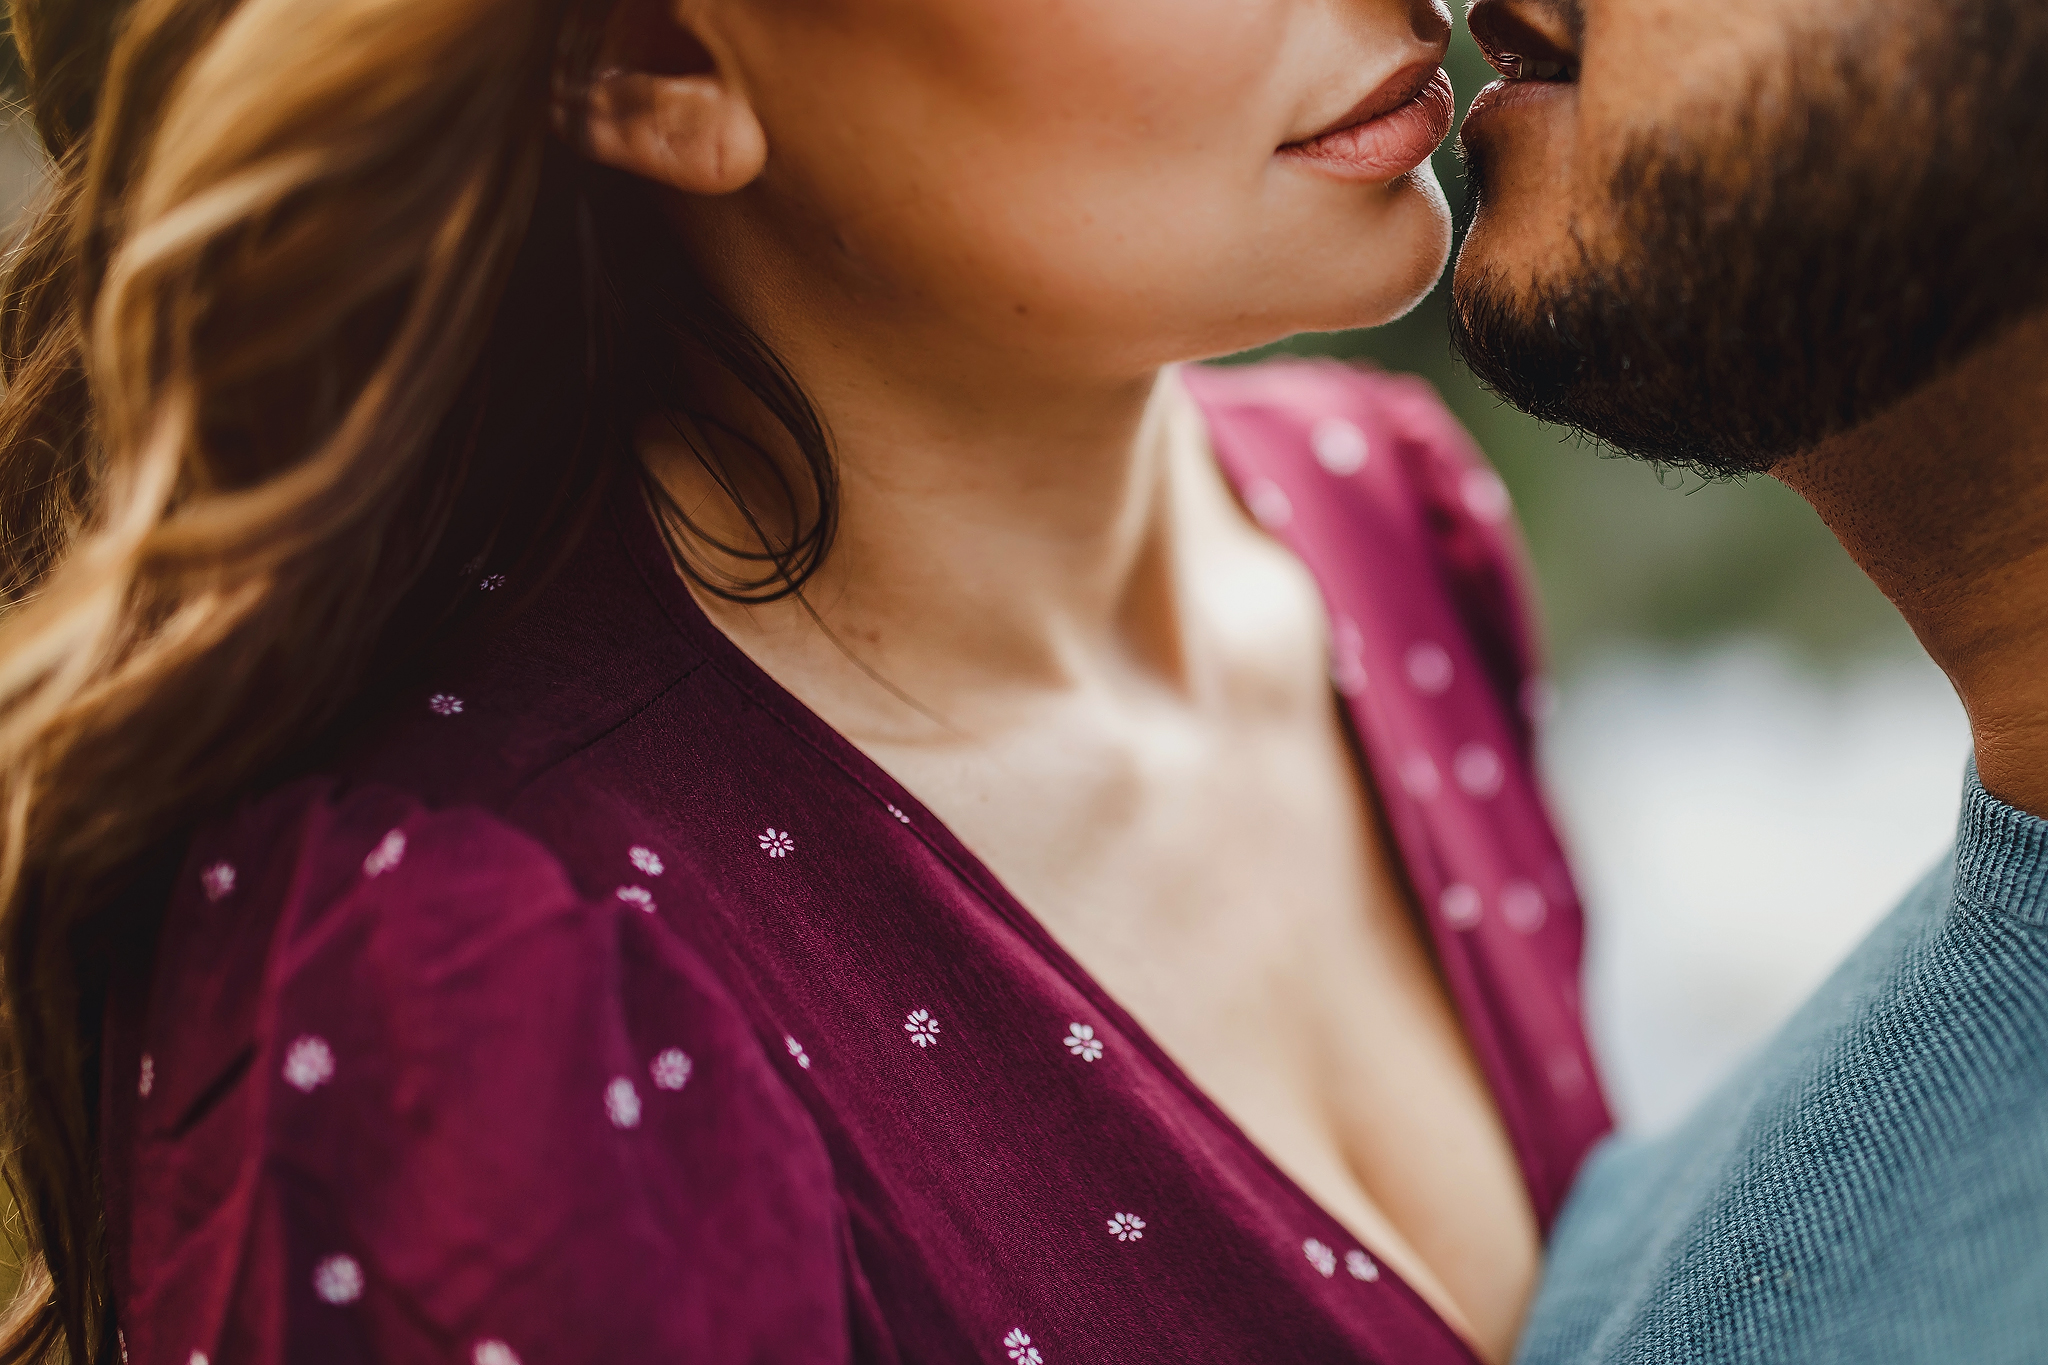 Close-up engagement photo of woman with russet lipstick kissing her finance - photo by Ruan Redelinghuys